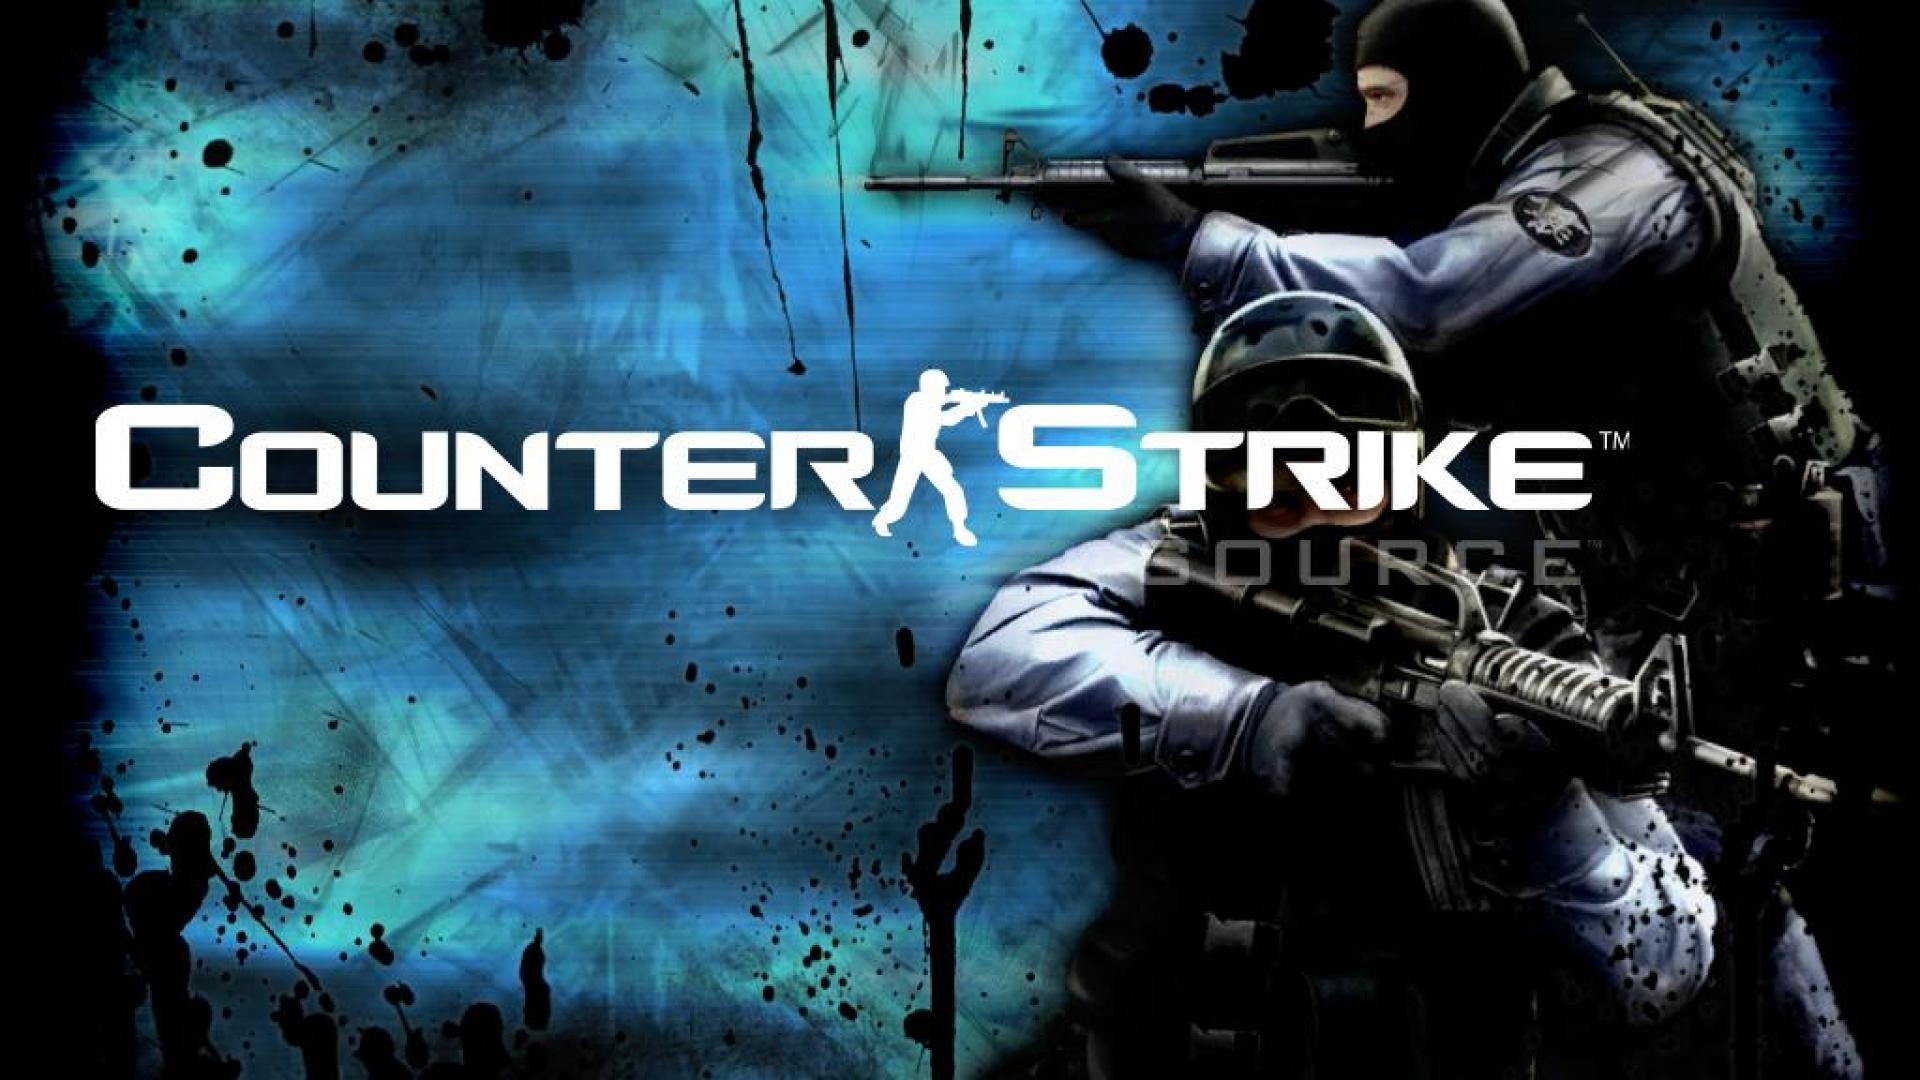 Counter Strike Backgrounds, Compatible - PC, Mobile, Gadgets| 1920x1080 px